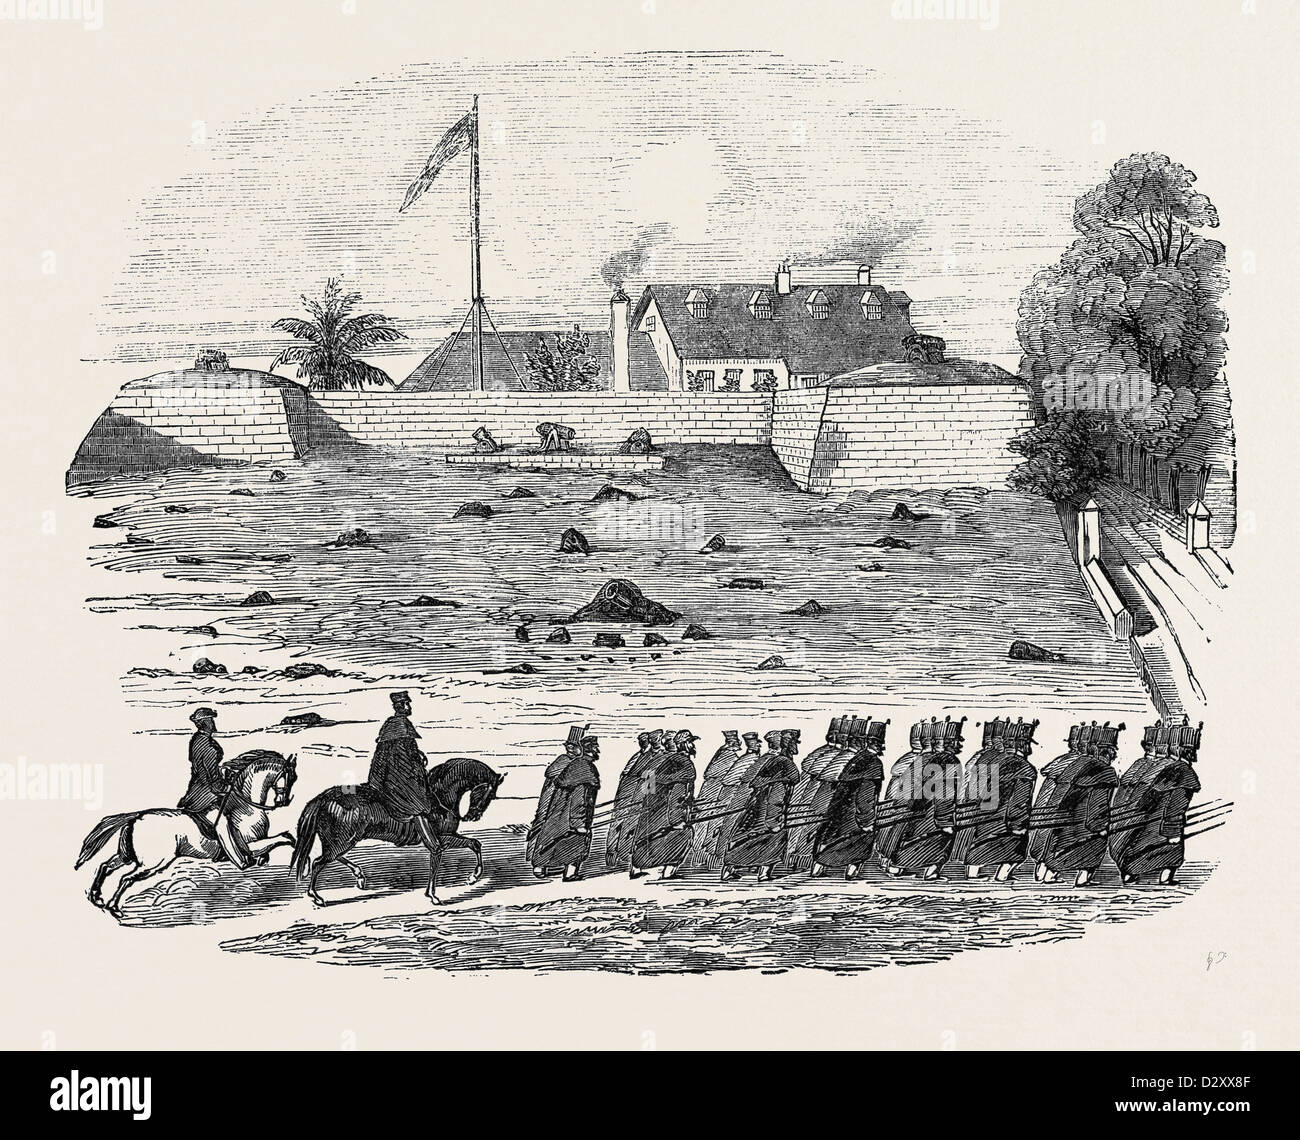 THE LATE DISASTER AT MALLAGHEA, RETURN OF PART OF THE 3RD WEST INDIA REGIMENT TO FREETOWN - Stock Image